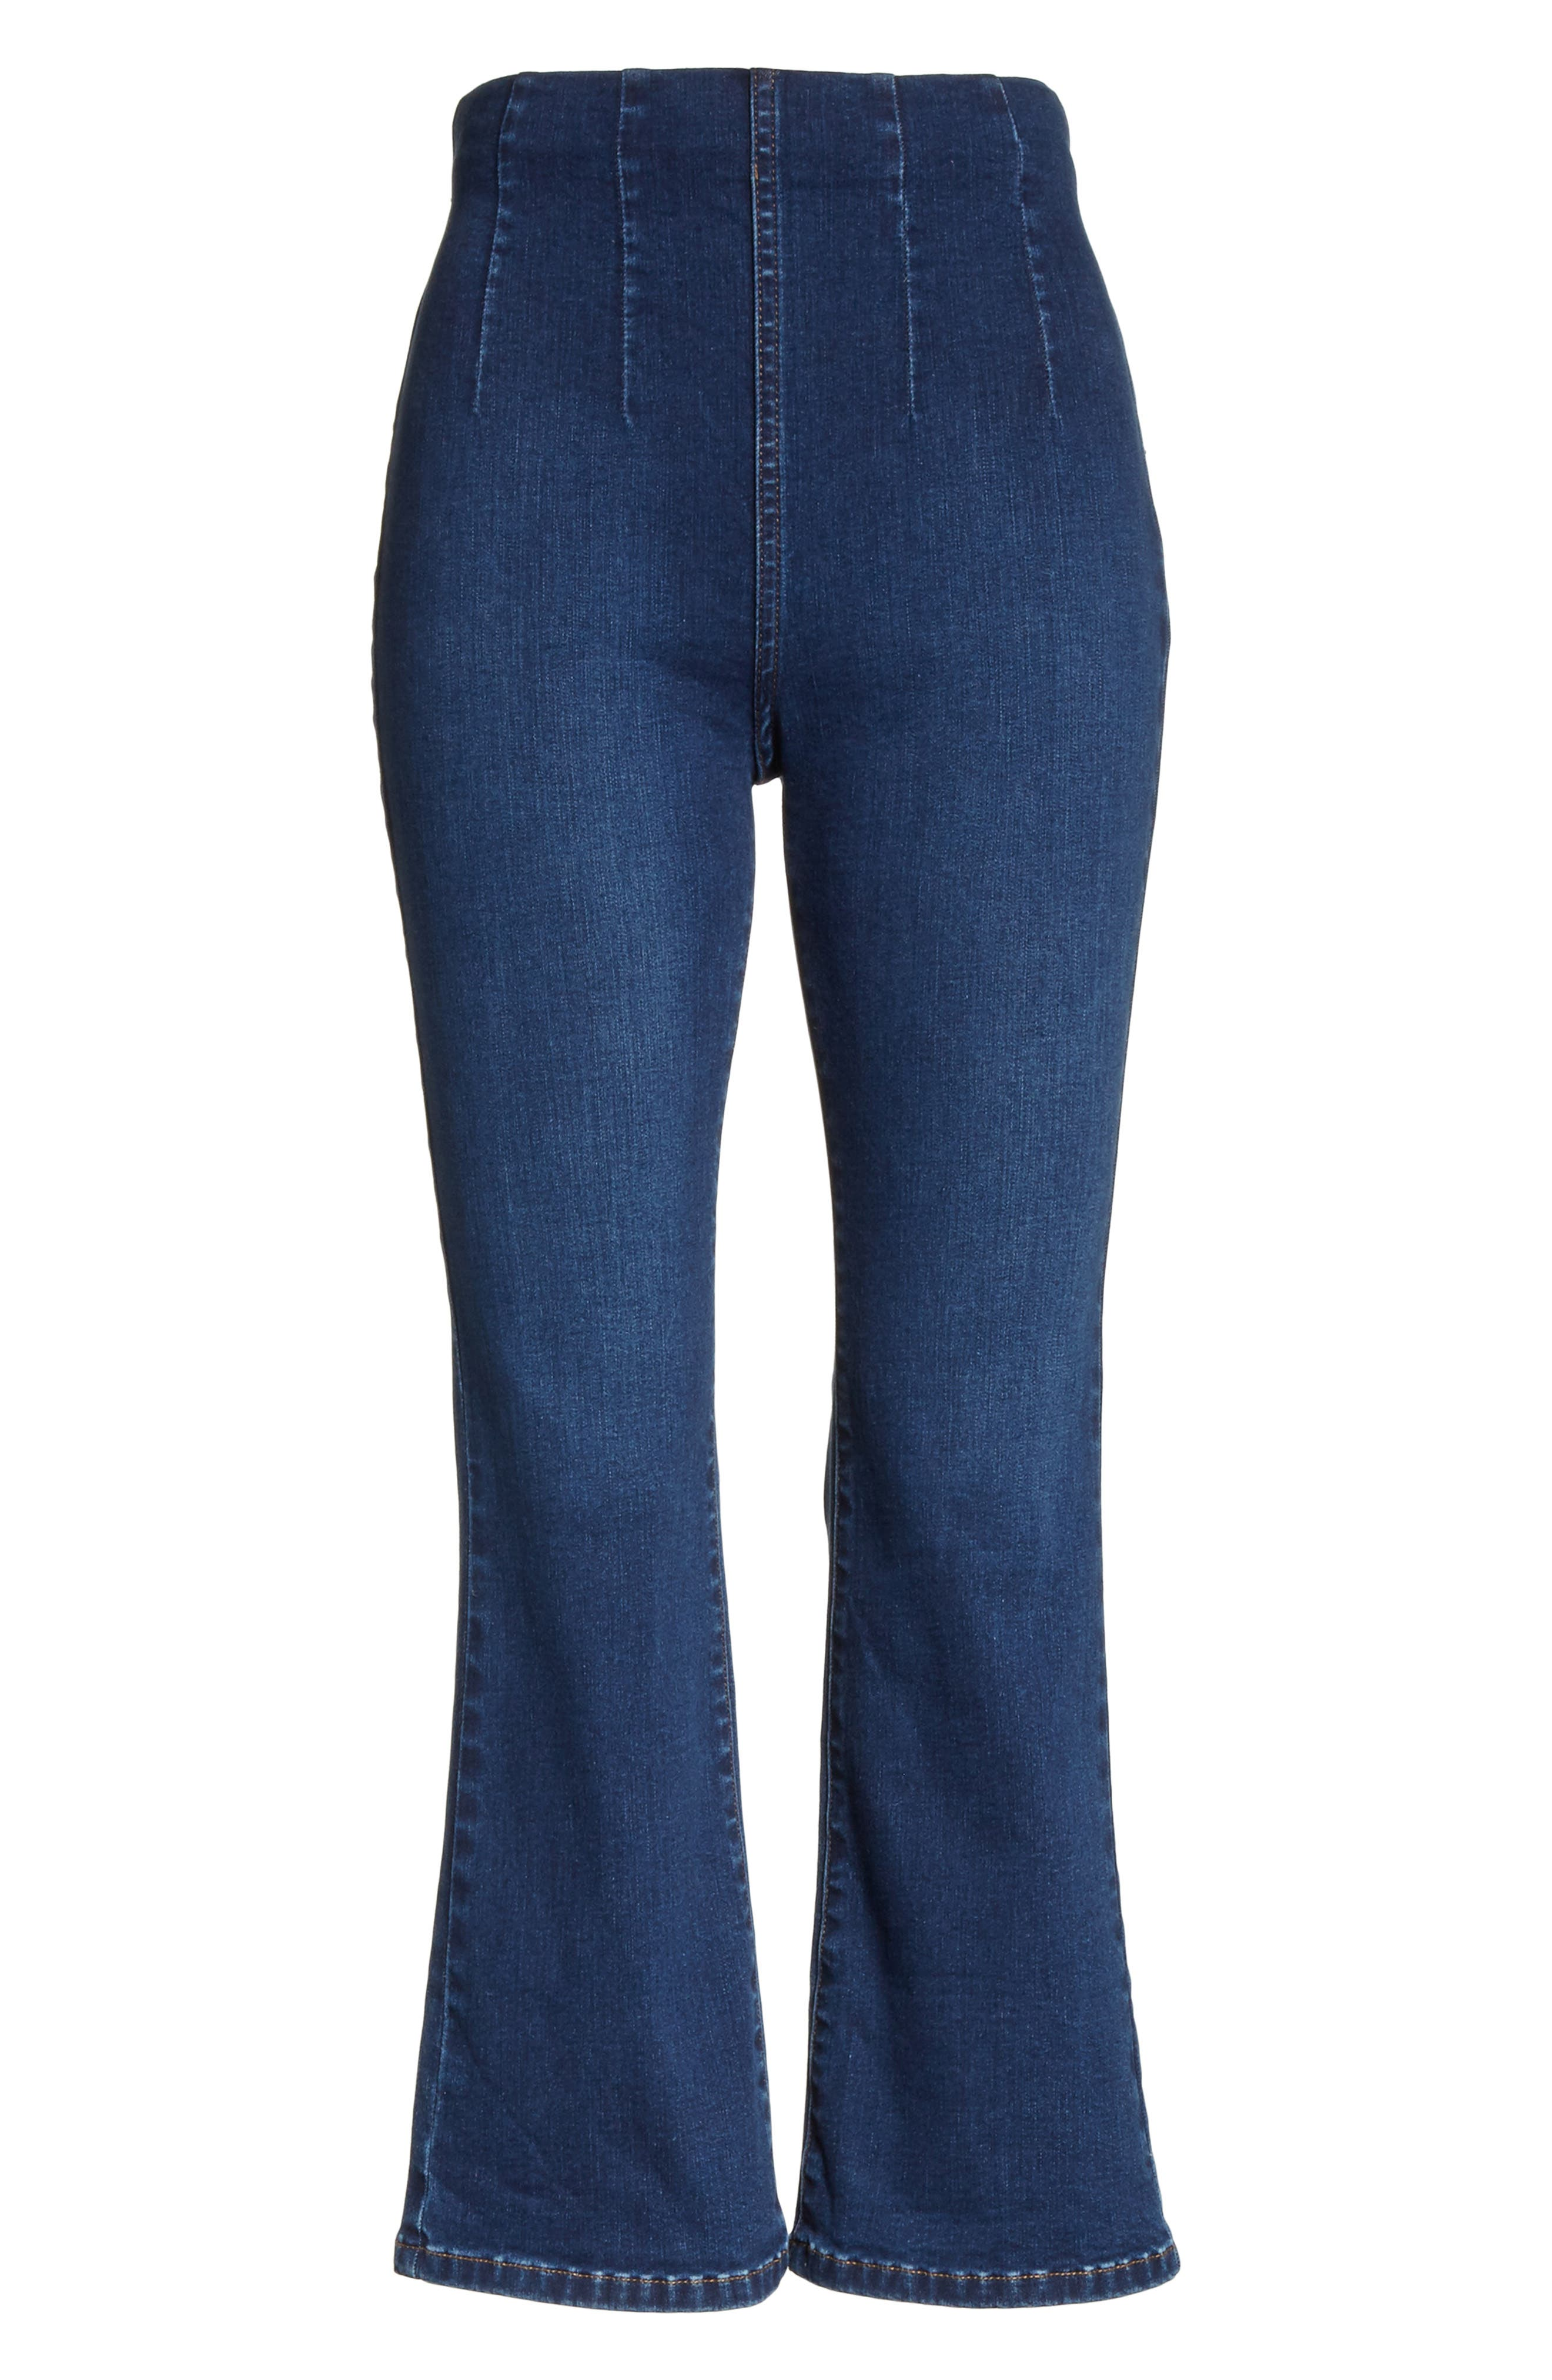 Pull-On Ultra High Waist Crop Bootcut Jeans,                             Alternate thumbnail 7, color,